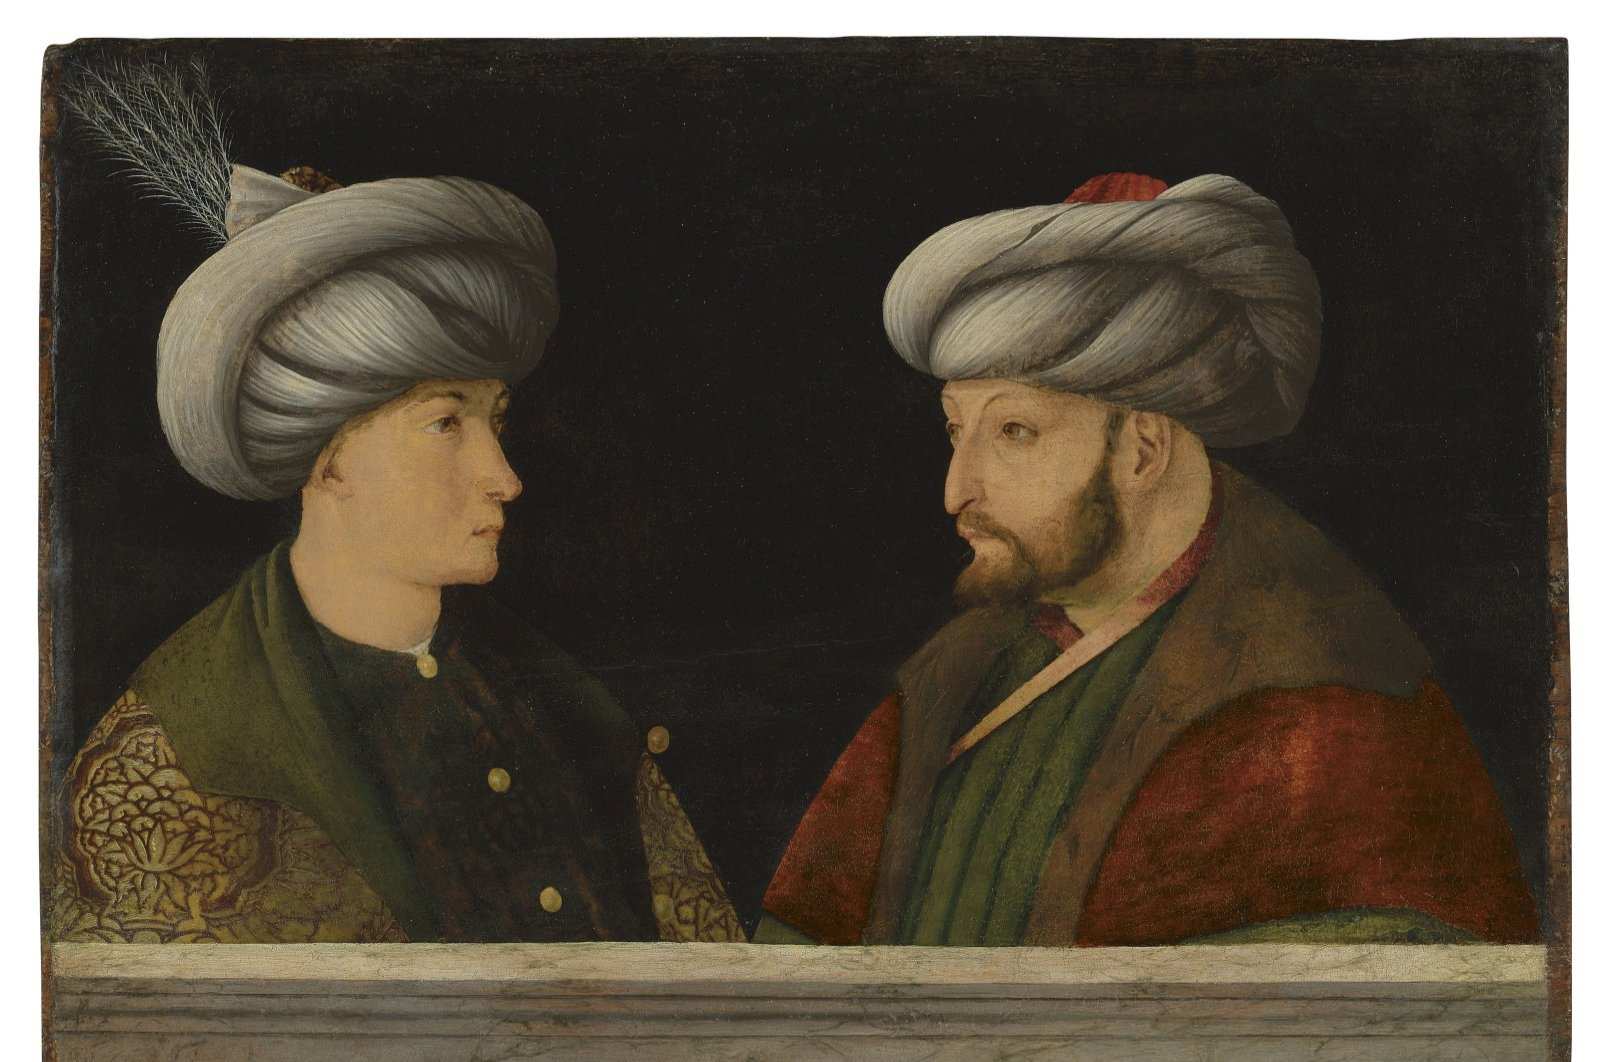 The painting purchased by the Istanbul Metropolitan Municipality. (DHA PHOTO)